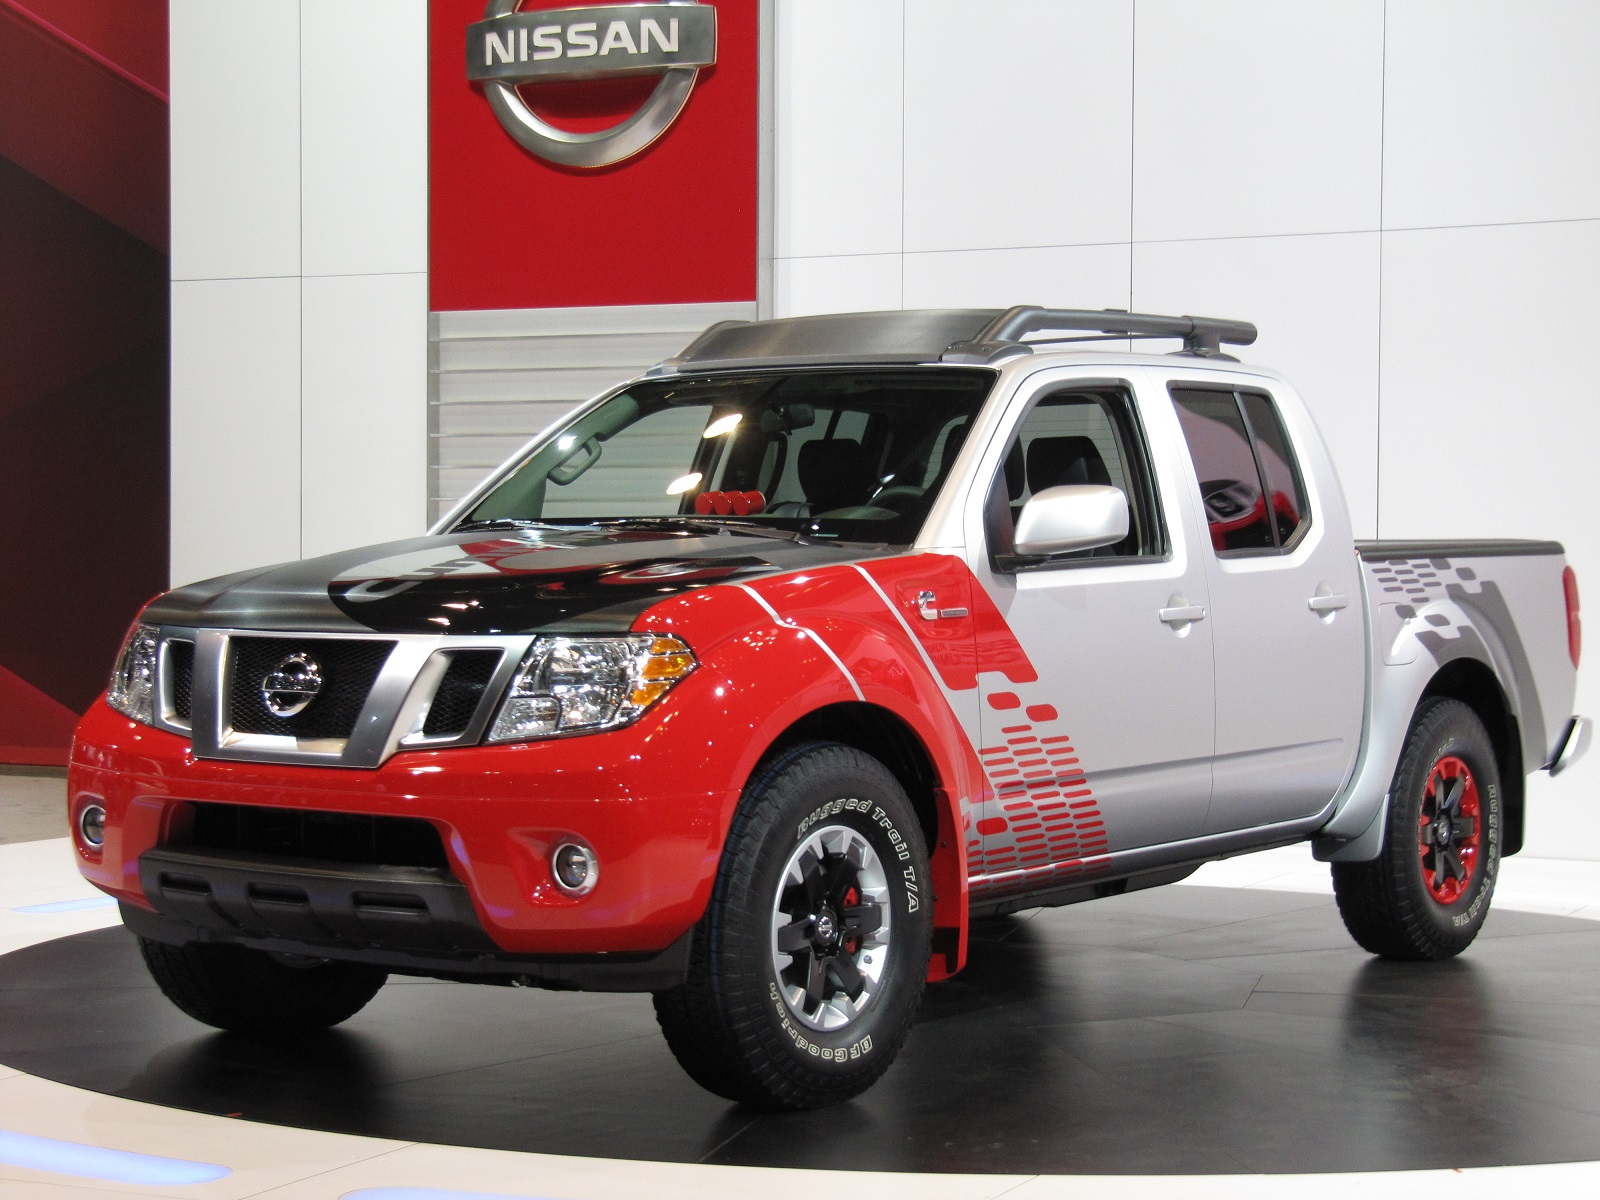 Nissan Frontier Diesel >> Nissan Frontier Diesel California Electric Car Meet Carsharing